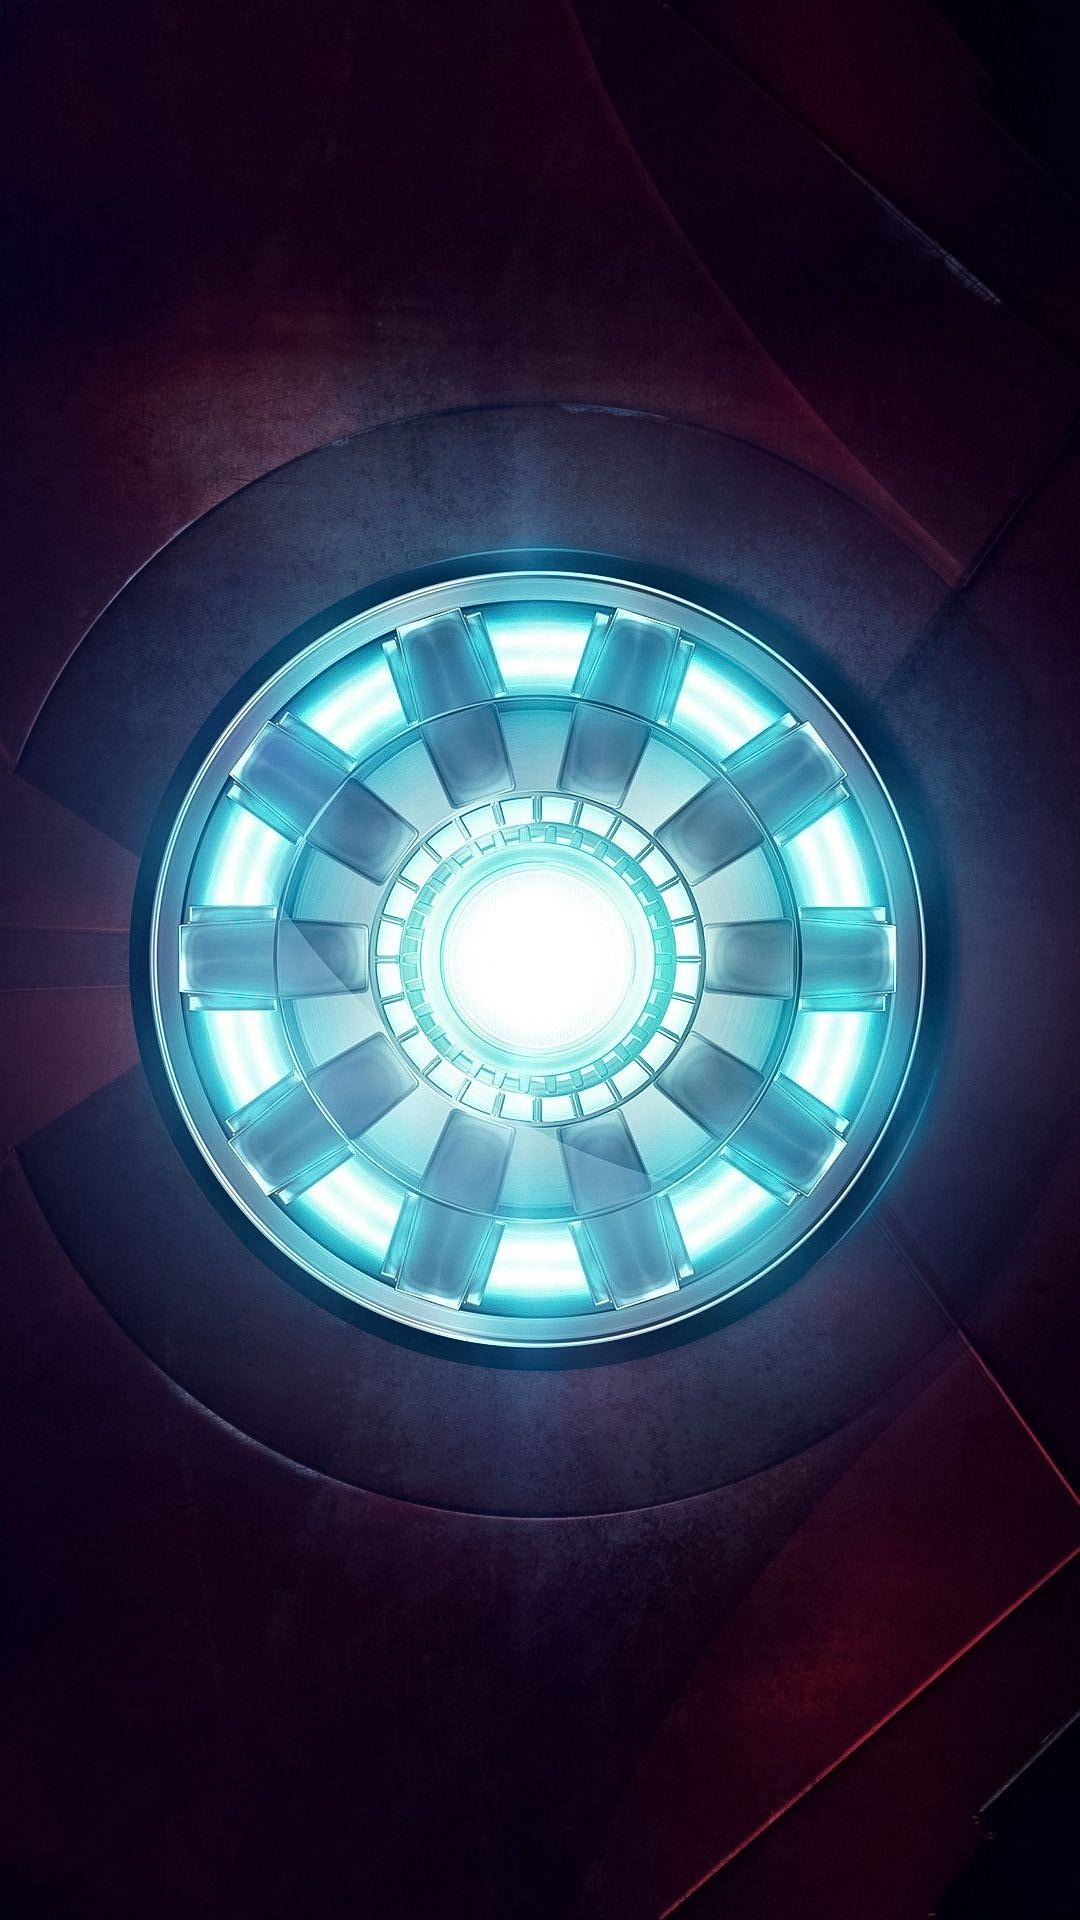 Iron Man Arc Reactor Wallpaper Vis to grab yourself a super